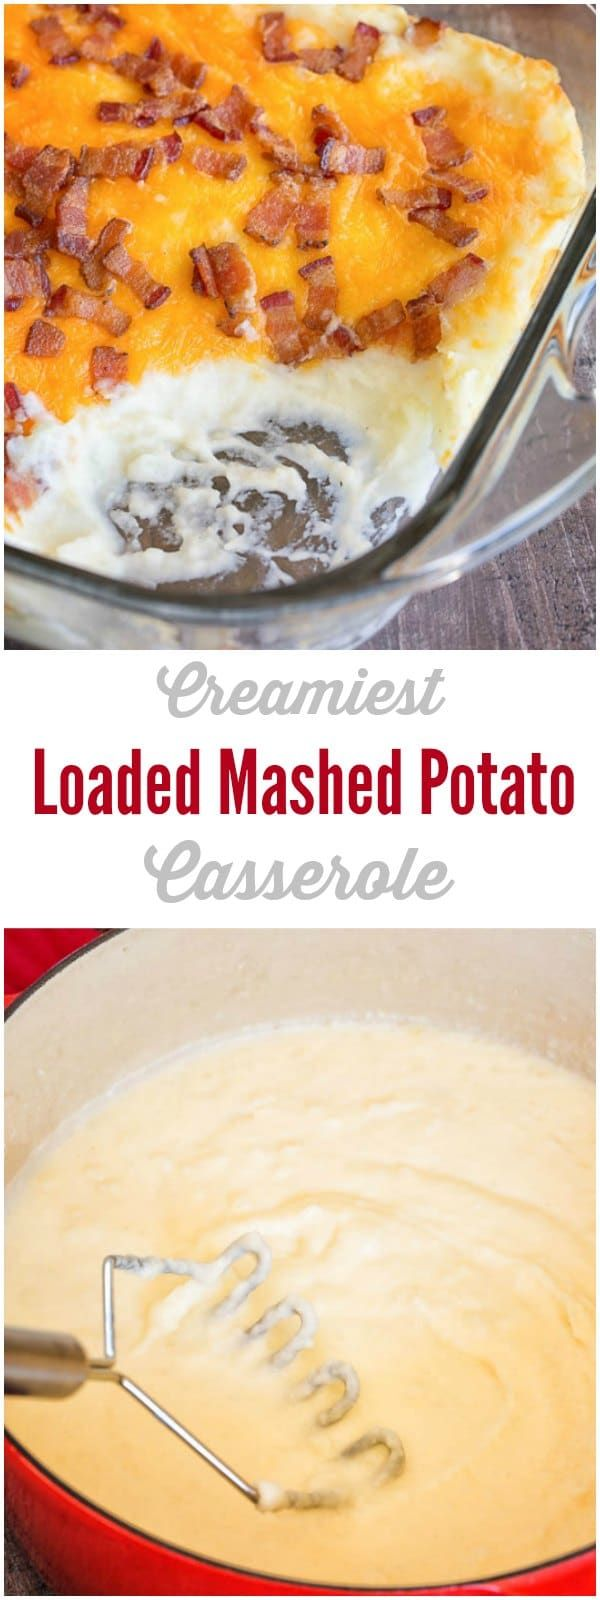 229 best Potatoes images on Pinterest | Cooking recipes, Dinner ...